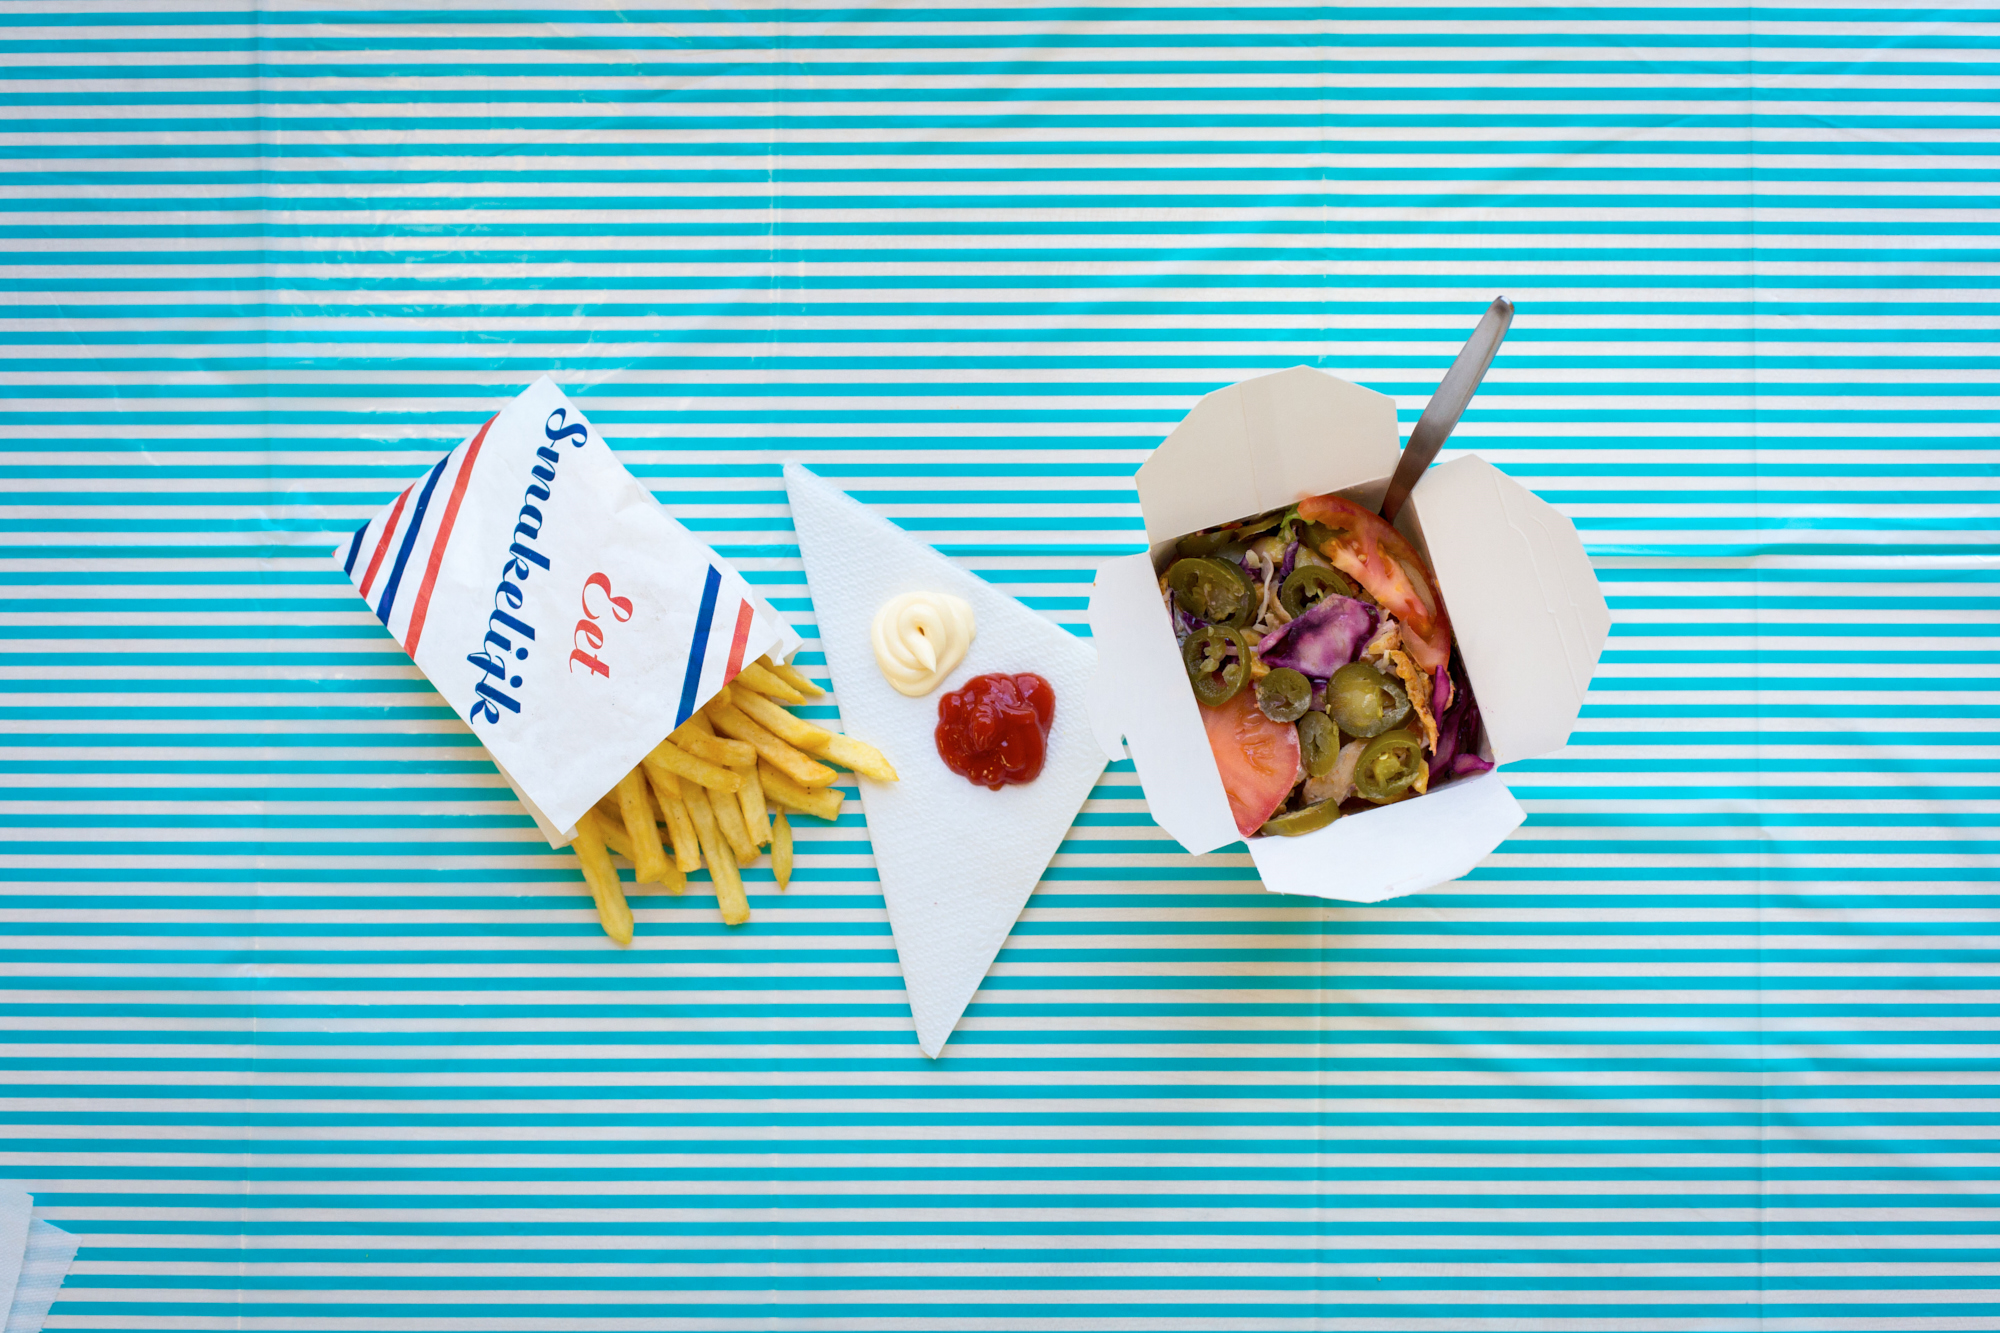 Doner Box and Friet